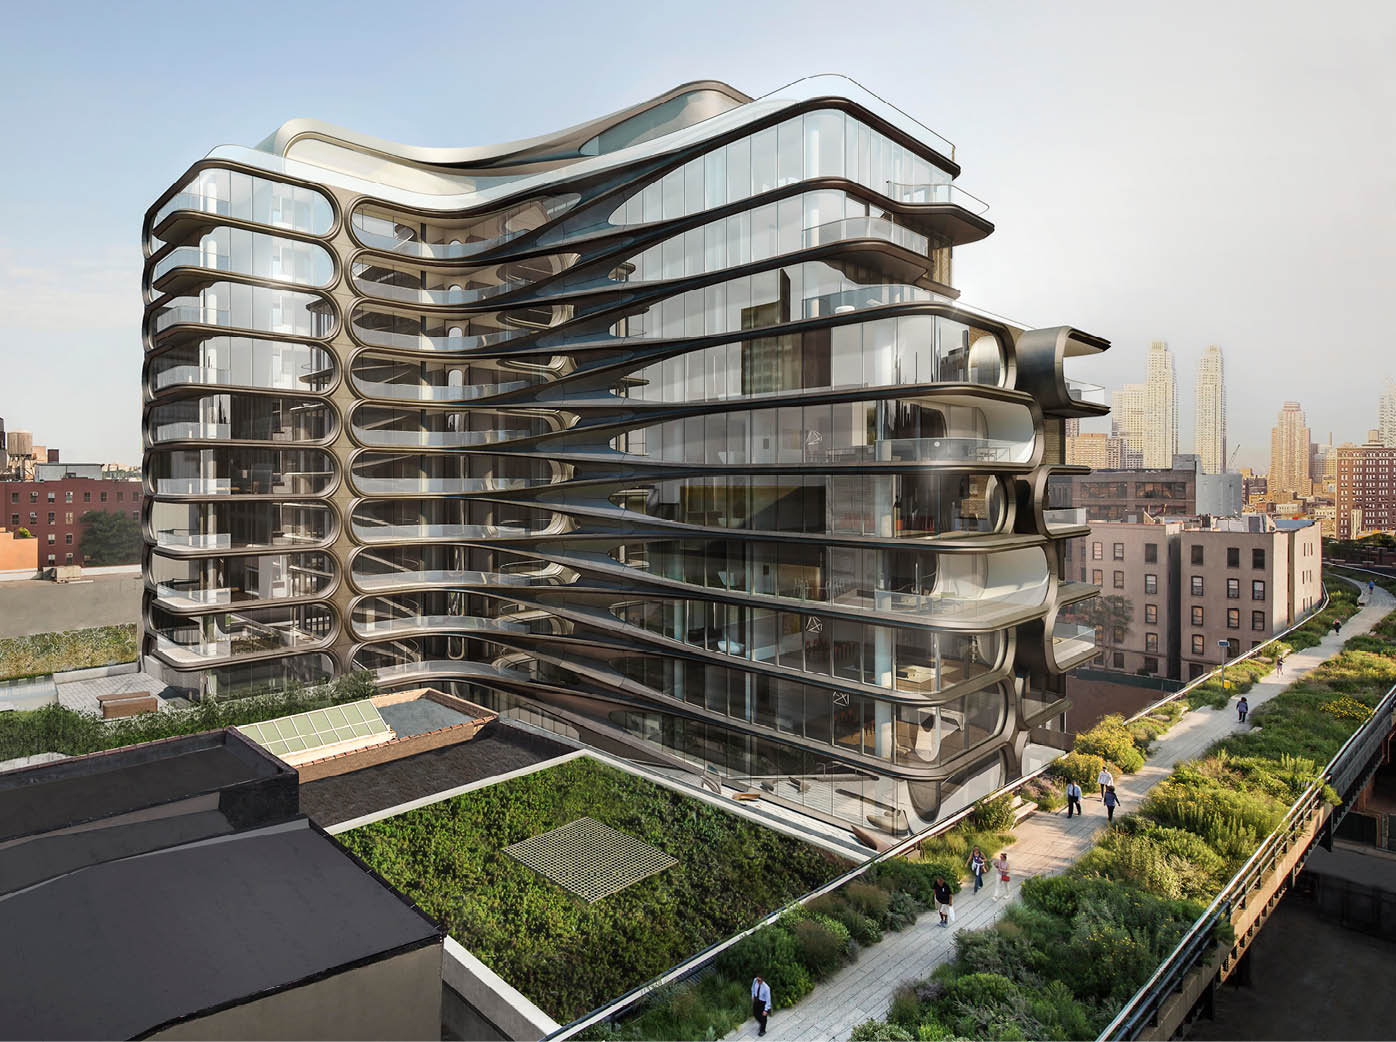 Zaha Hadid's futuristic 520 West 28th Street gets rental listings, from $15,000/month